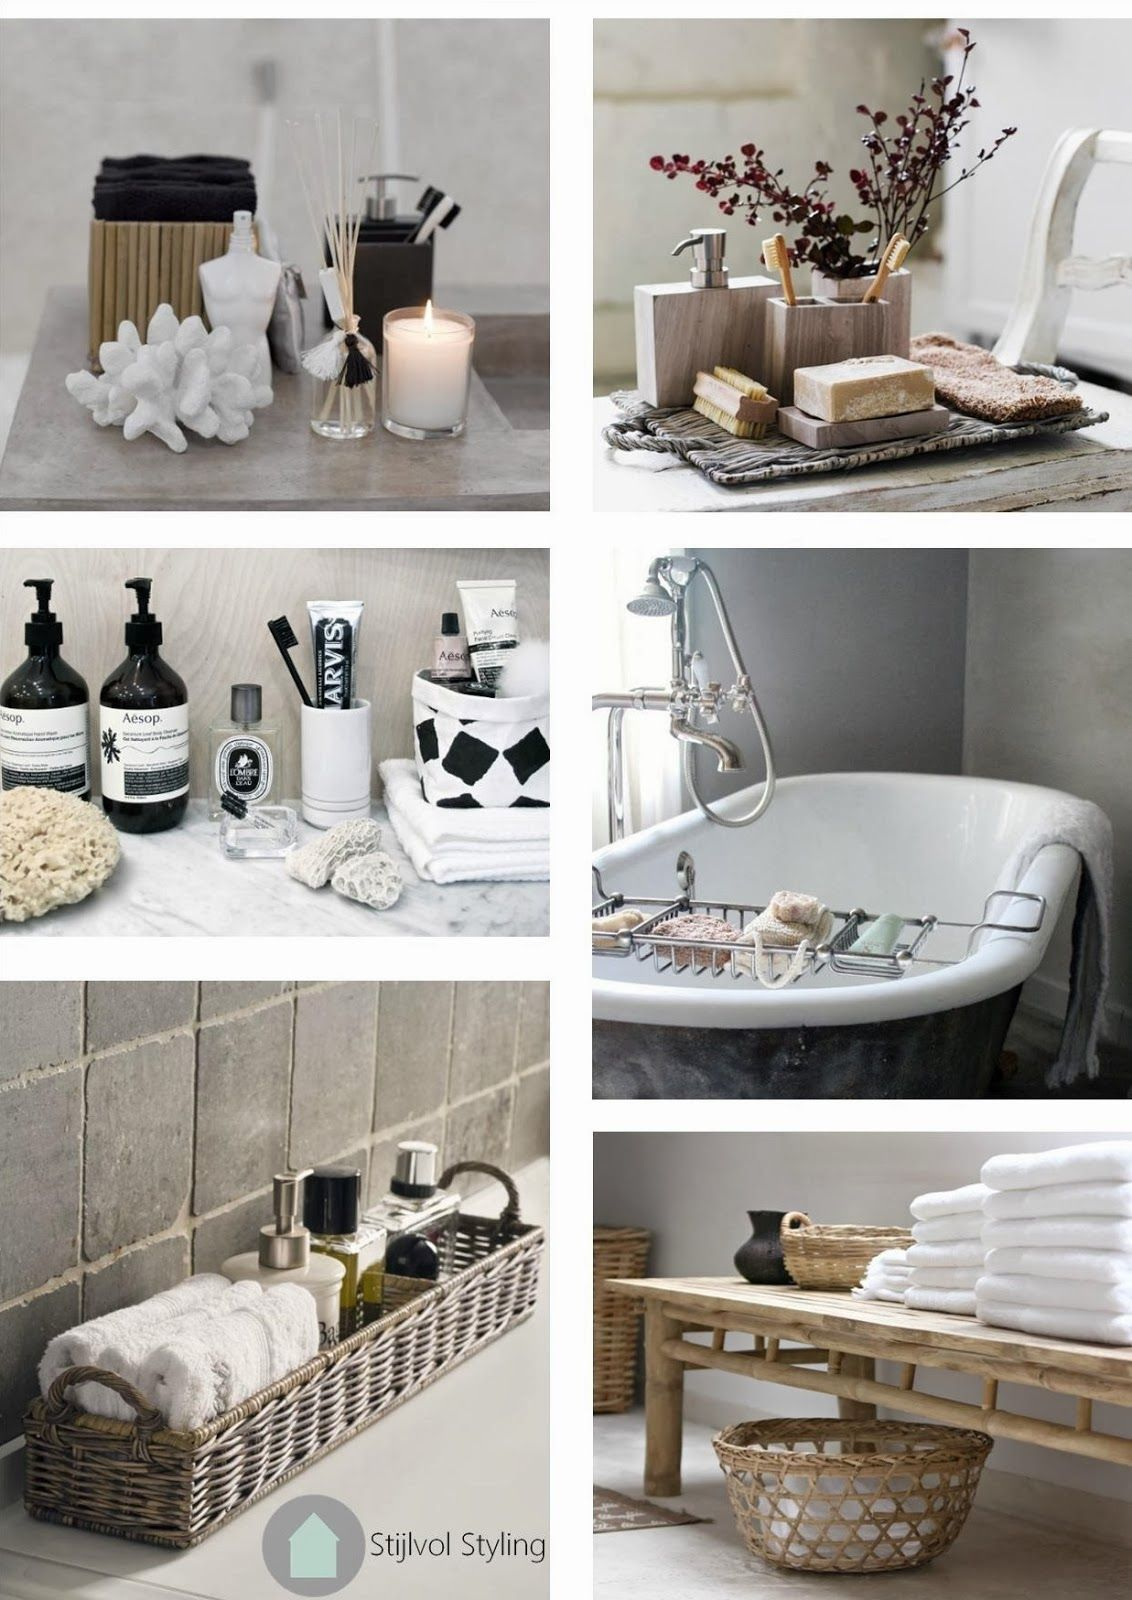 interieur accessoires en styling inspiratie voor de badkamer bathroom sink decor attic bathroom